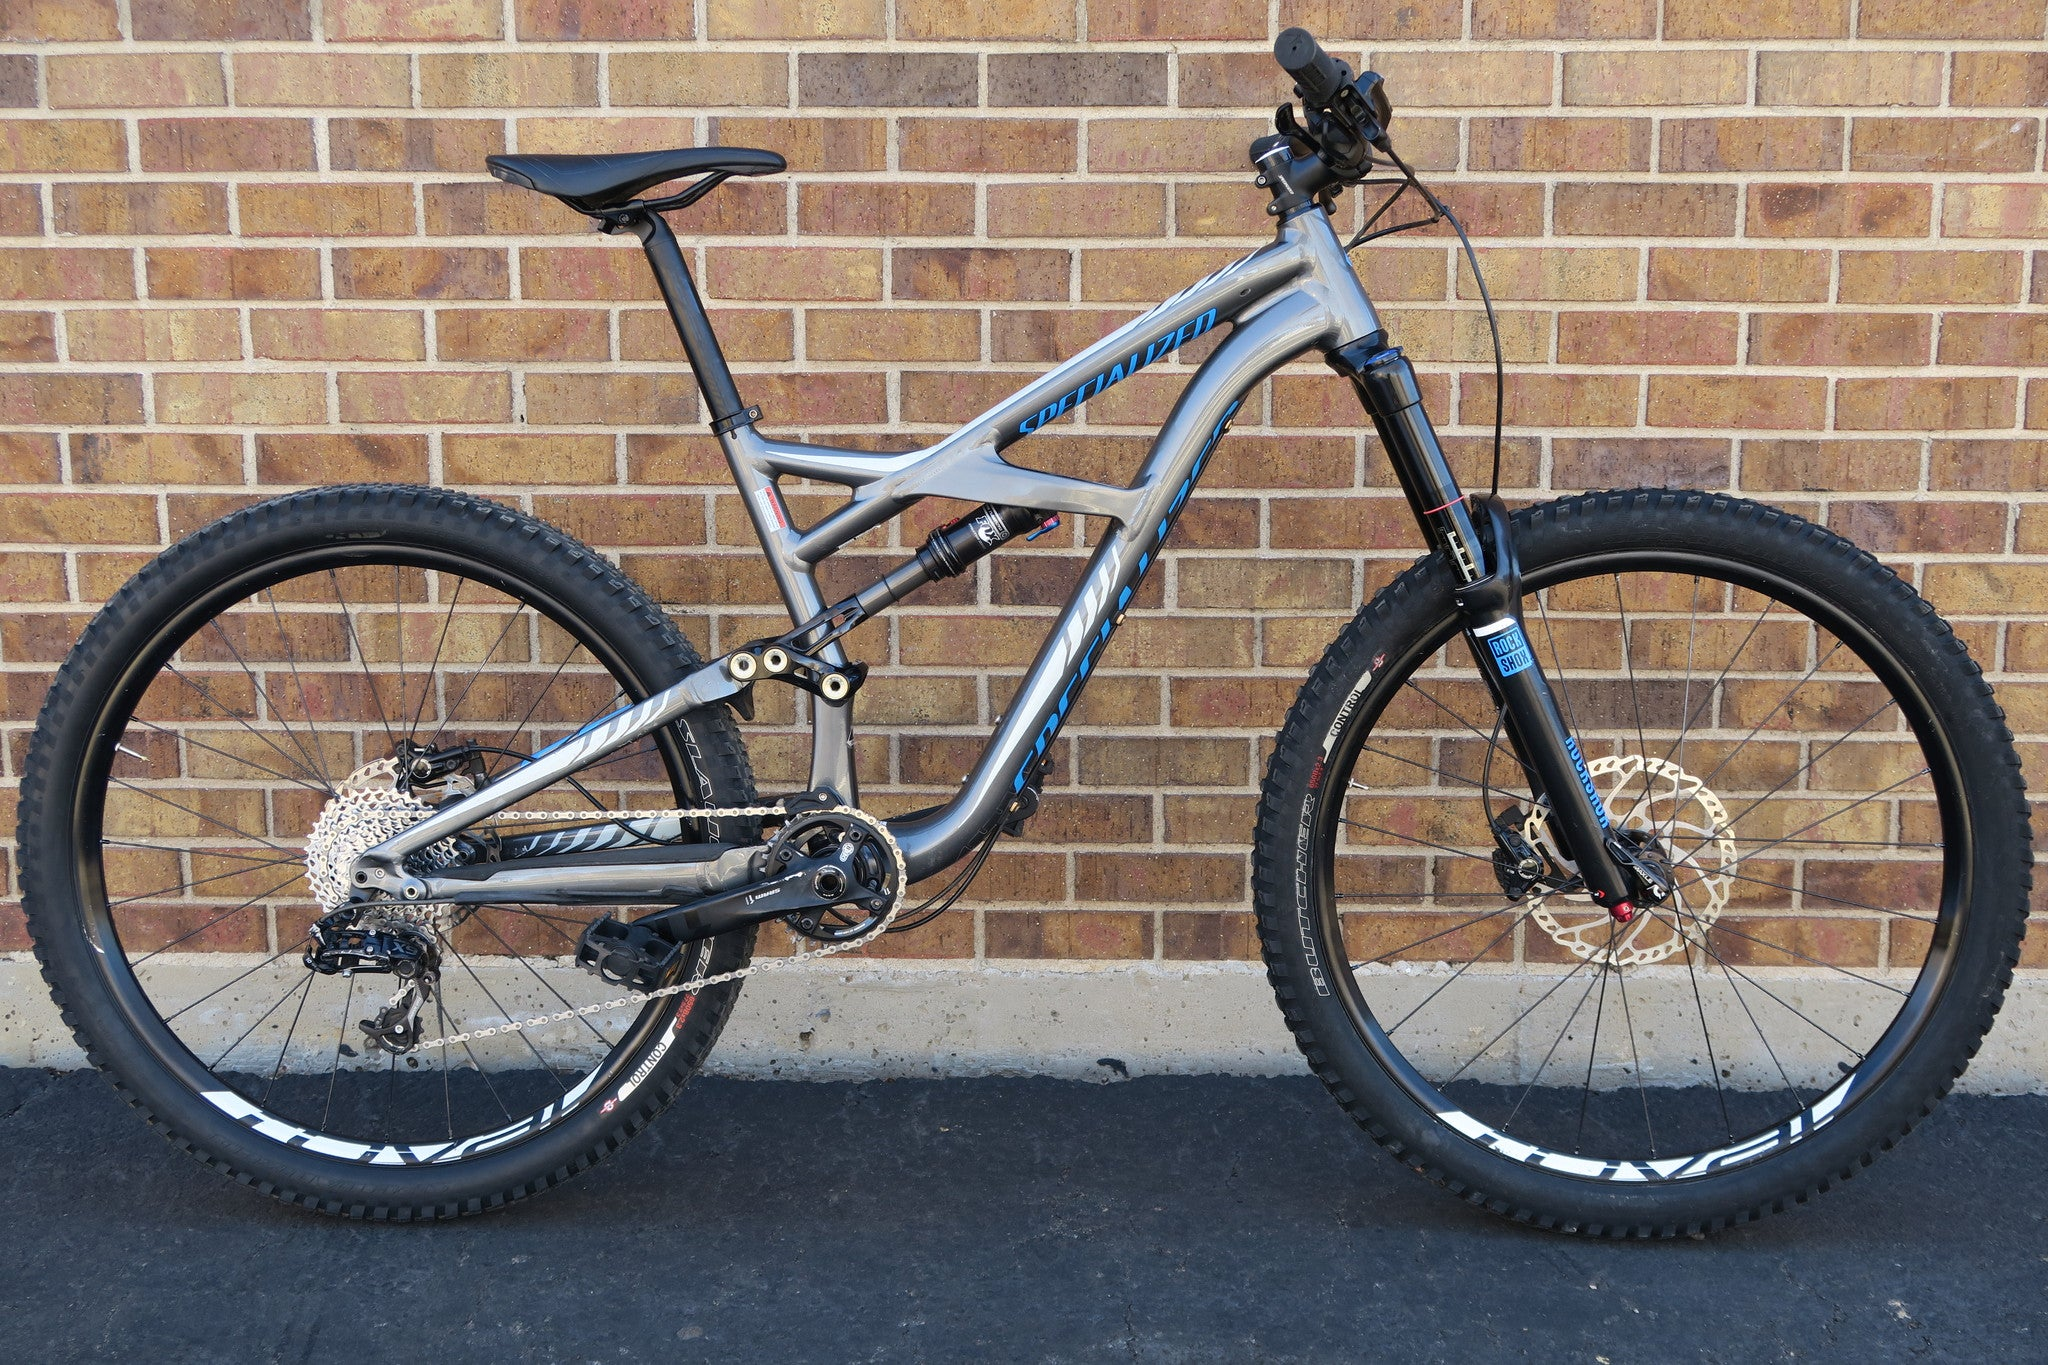 2015 SPECIALIZED ENDURO COMP 27.5